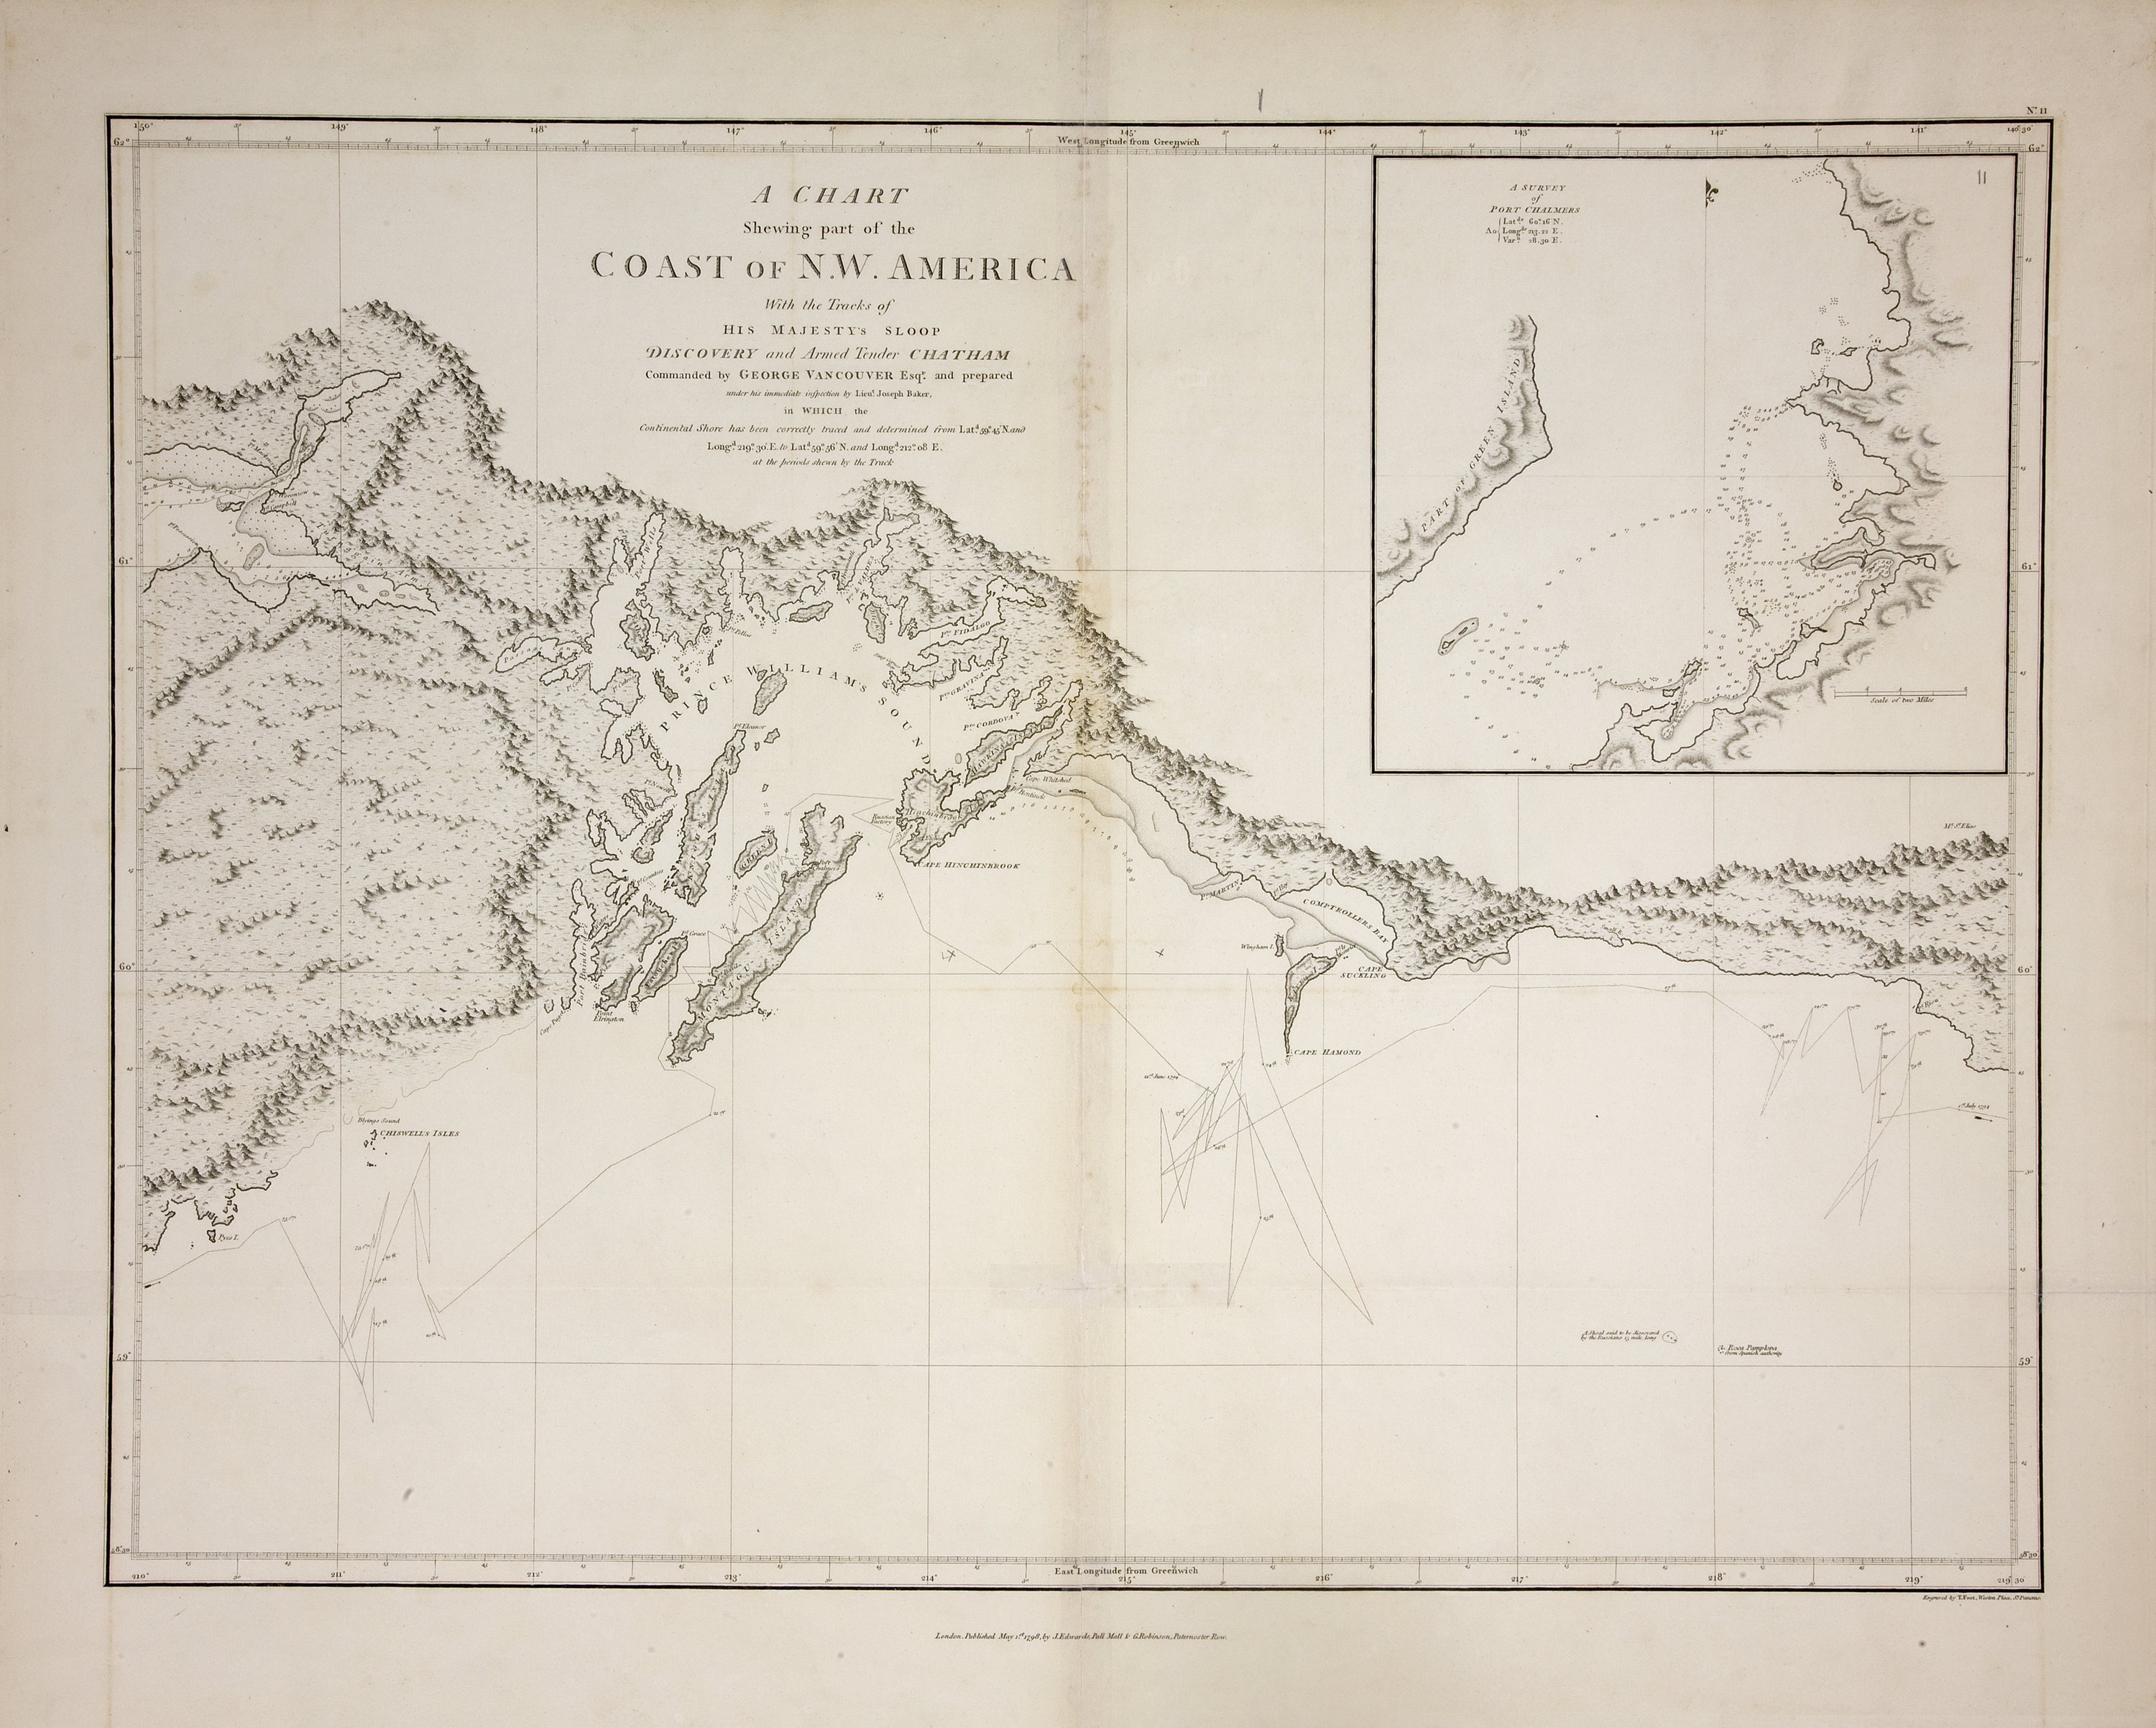 Chart shewing part of the coast of N.W. America, with the tracks of His Majesty's sloop Discovery and armed tender Chatham / ǂc commanded by George Vancouver, esqr. and prepared under his immediate inspection by Lieut. Joseph Baker, in which the continental shore has been correctly traced and determined from latd. 59⁰.45ʹ N. and longd. 219⁰.30ʹ E. to latd. 59⁰.56ʹ N. and longd. 212⁰.08ʹ E. at the periods shewn by the track ; engraved by T. Foot.